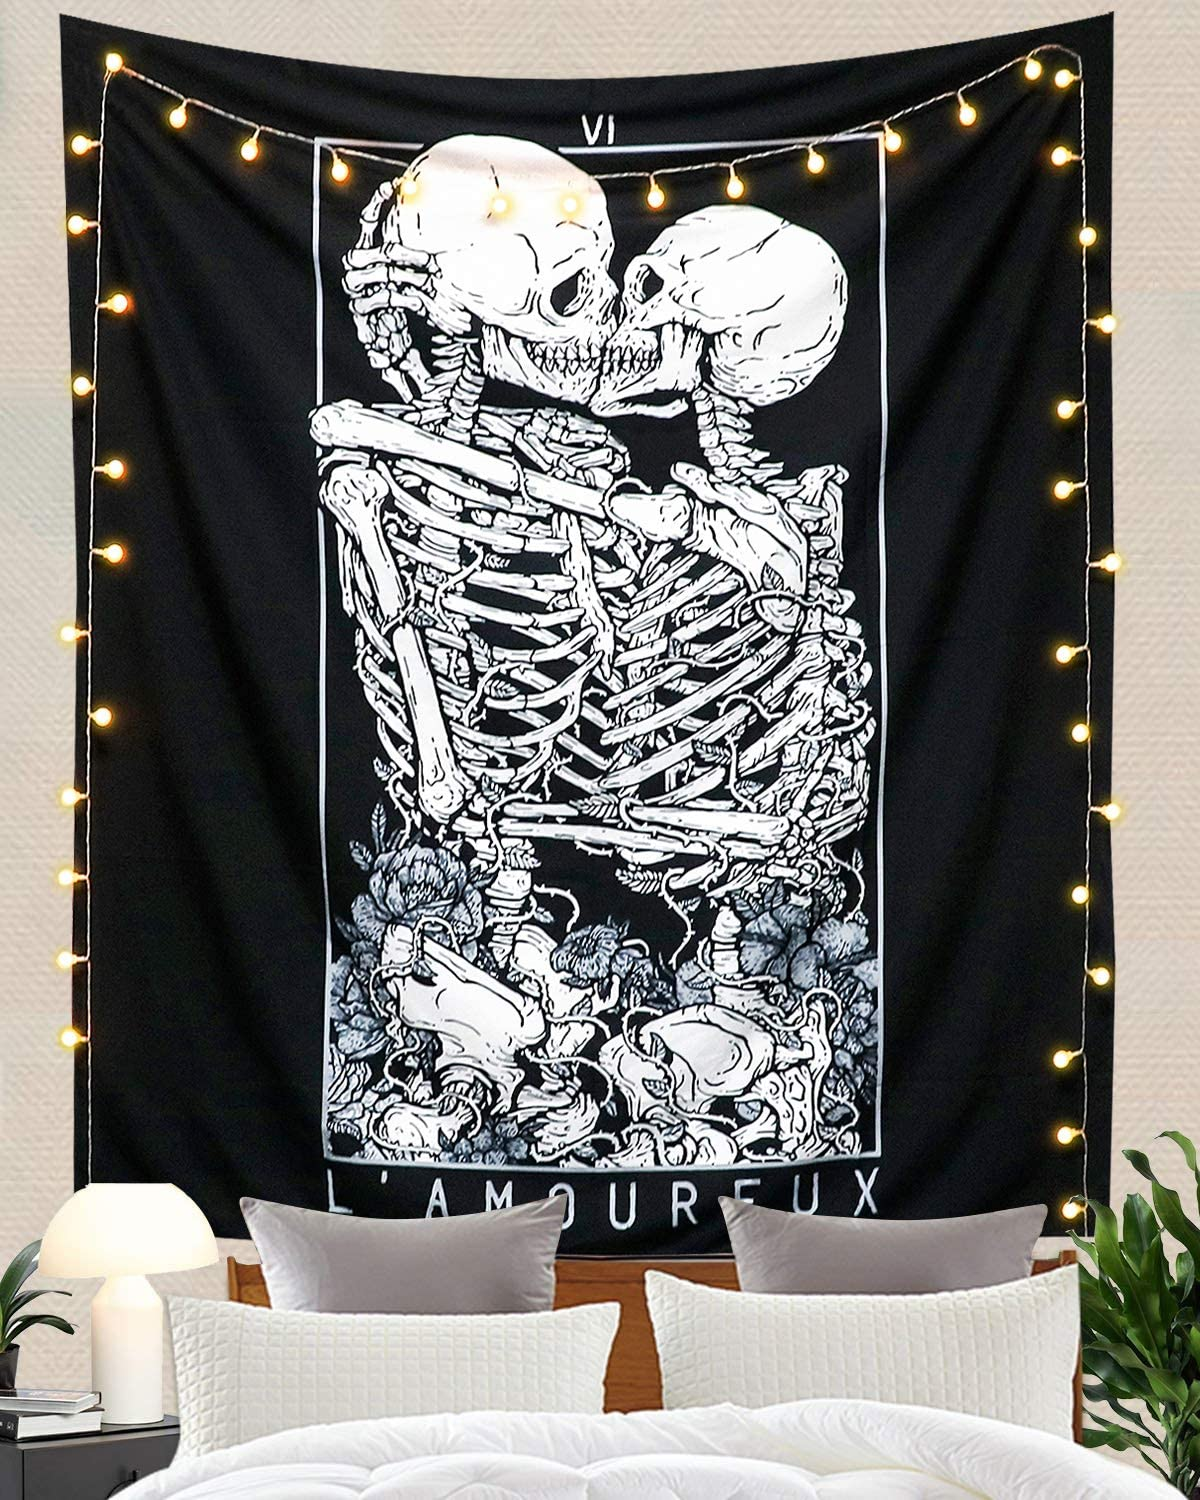 Indian Wall Hanging Poster Tapestry Skull Kissing Printed Wall Decor Tapestry